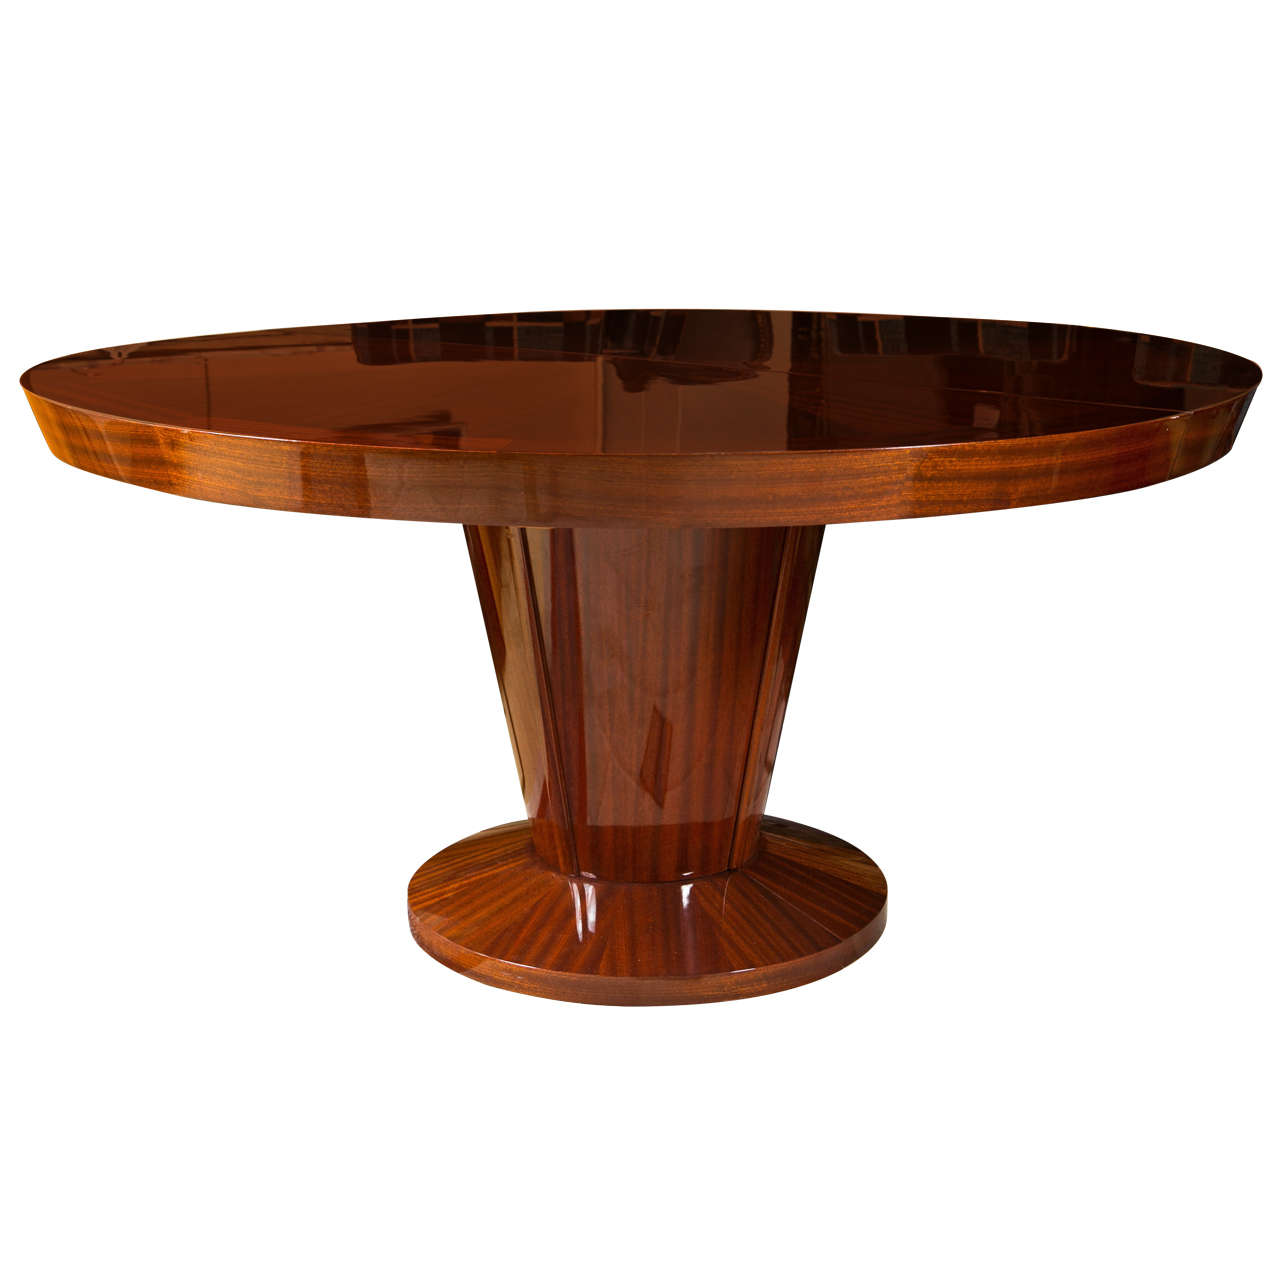 art deco style rosewood dining table at 1stdibs. Black Bedroom Furniture Sets. Home Design Ideas